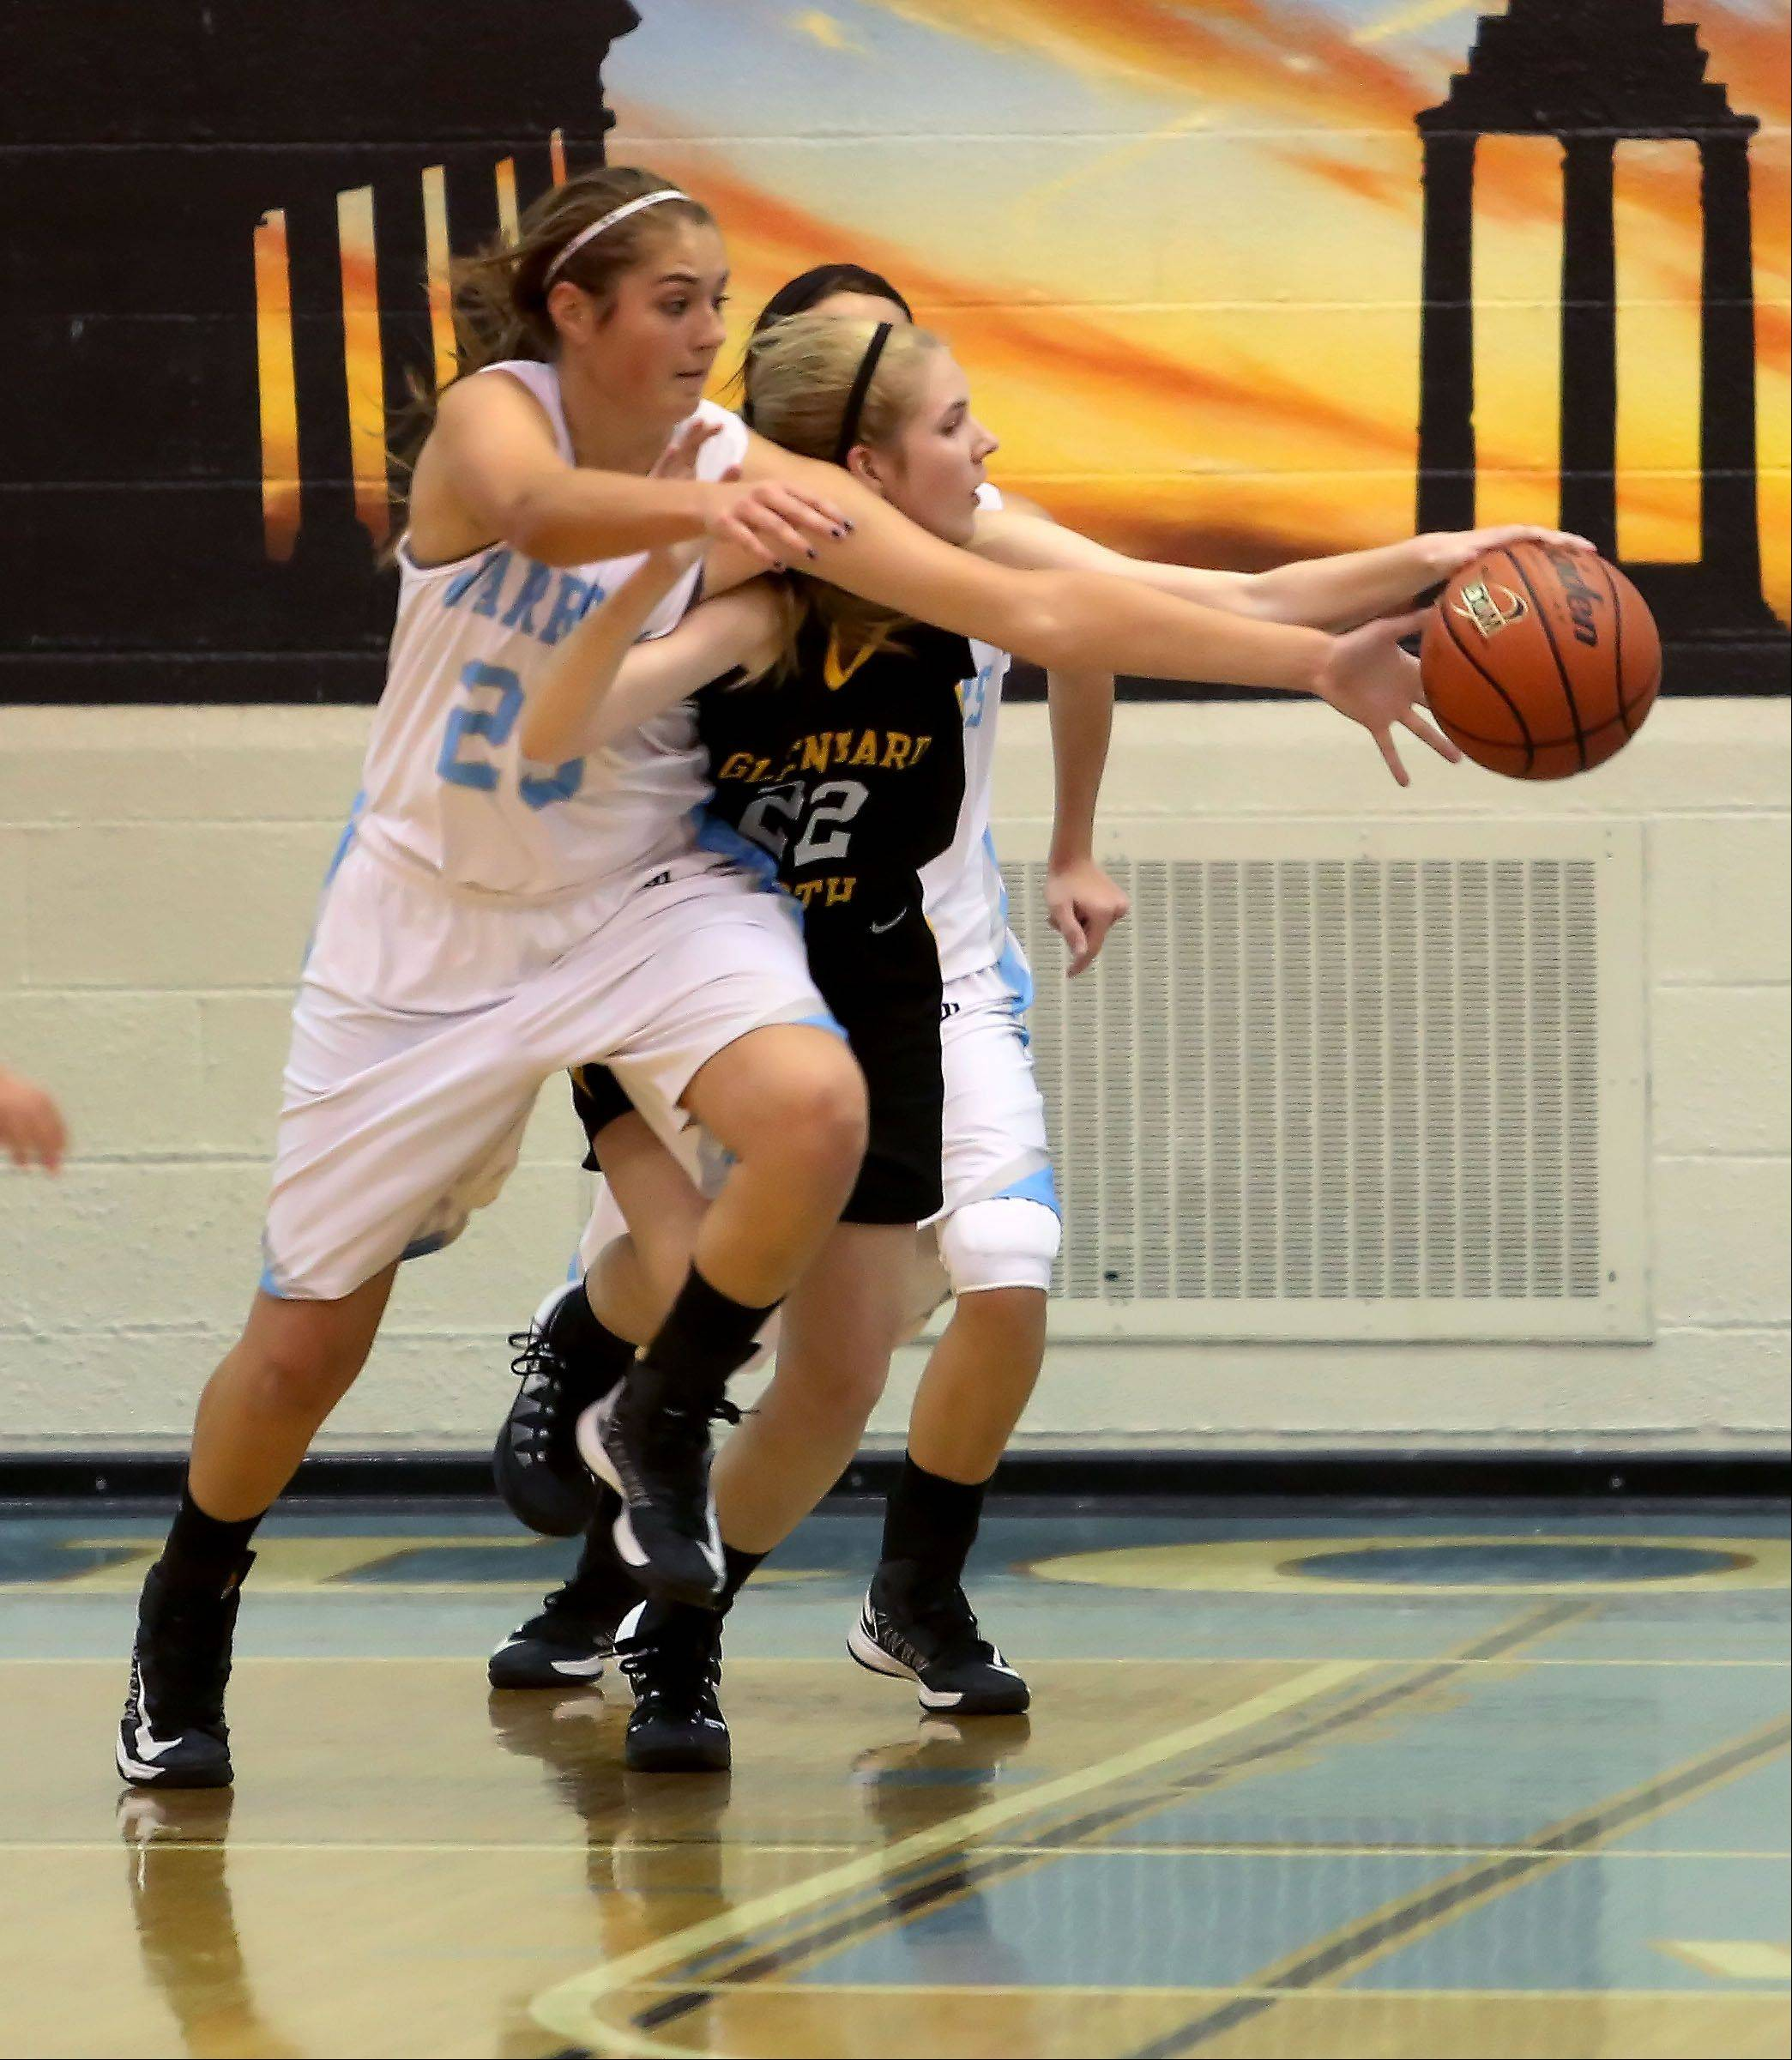 Samantha Schmidt, left, of Willowbrook and Jennifer Deegan, right of Glenbard North, go after a loose ball during girls basketball on Tuesday in Villa Park.